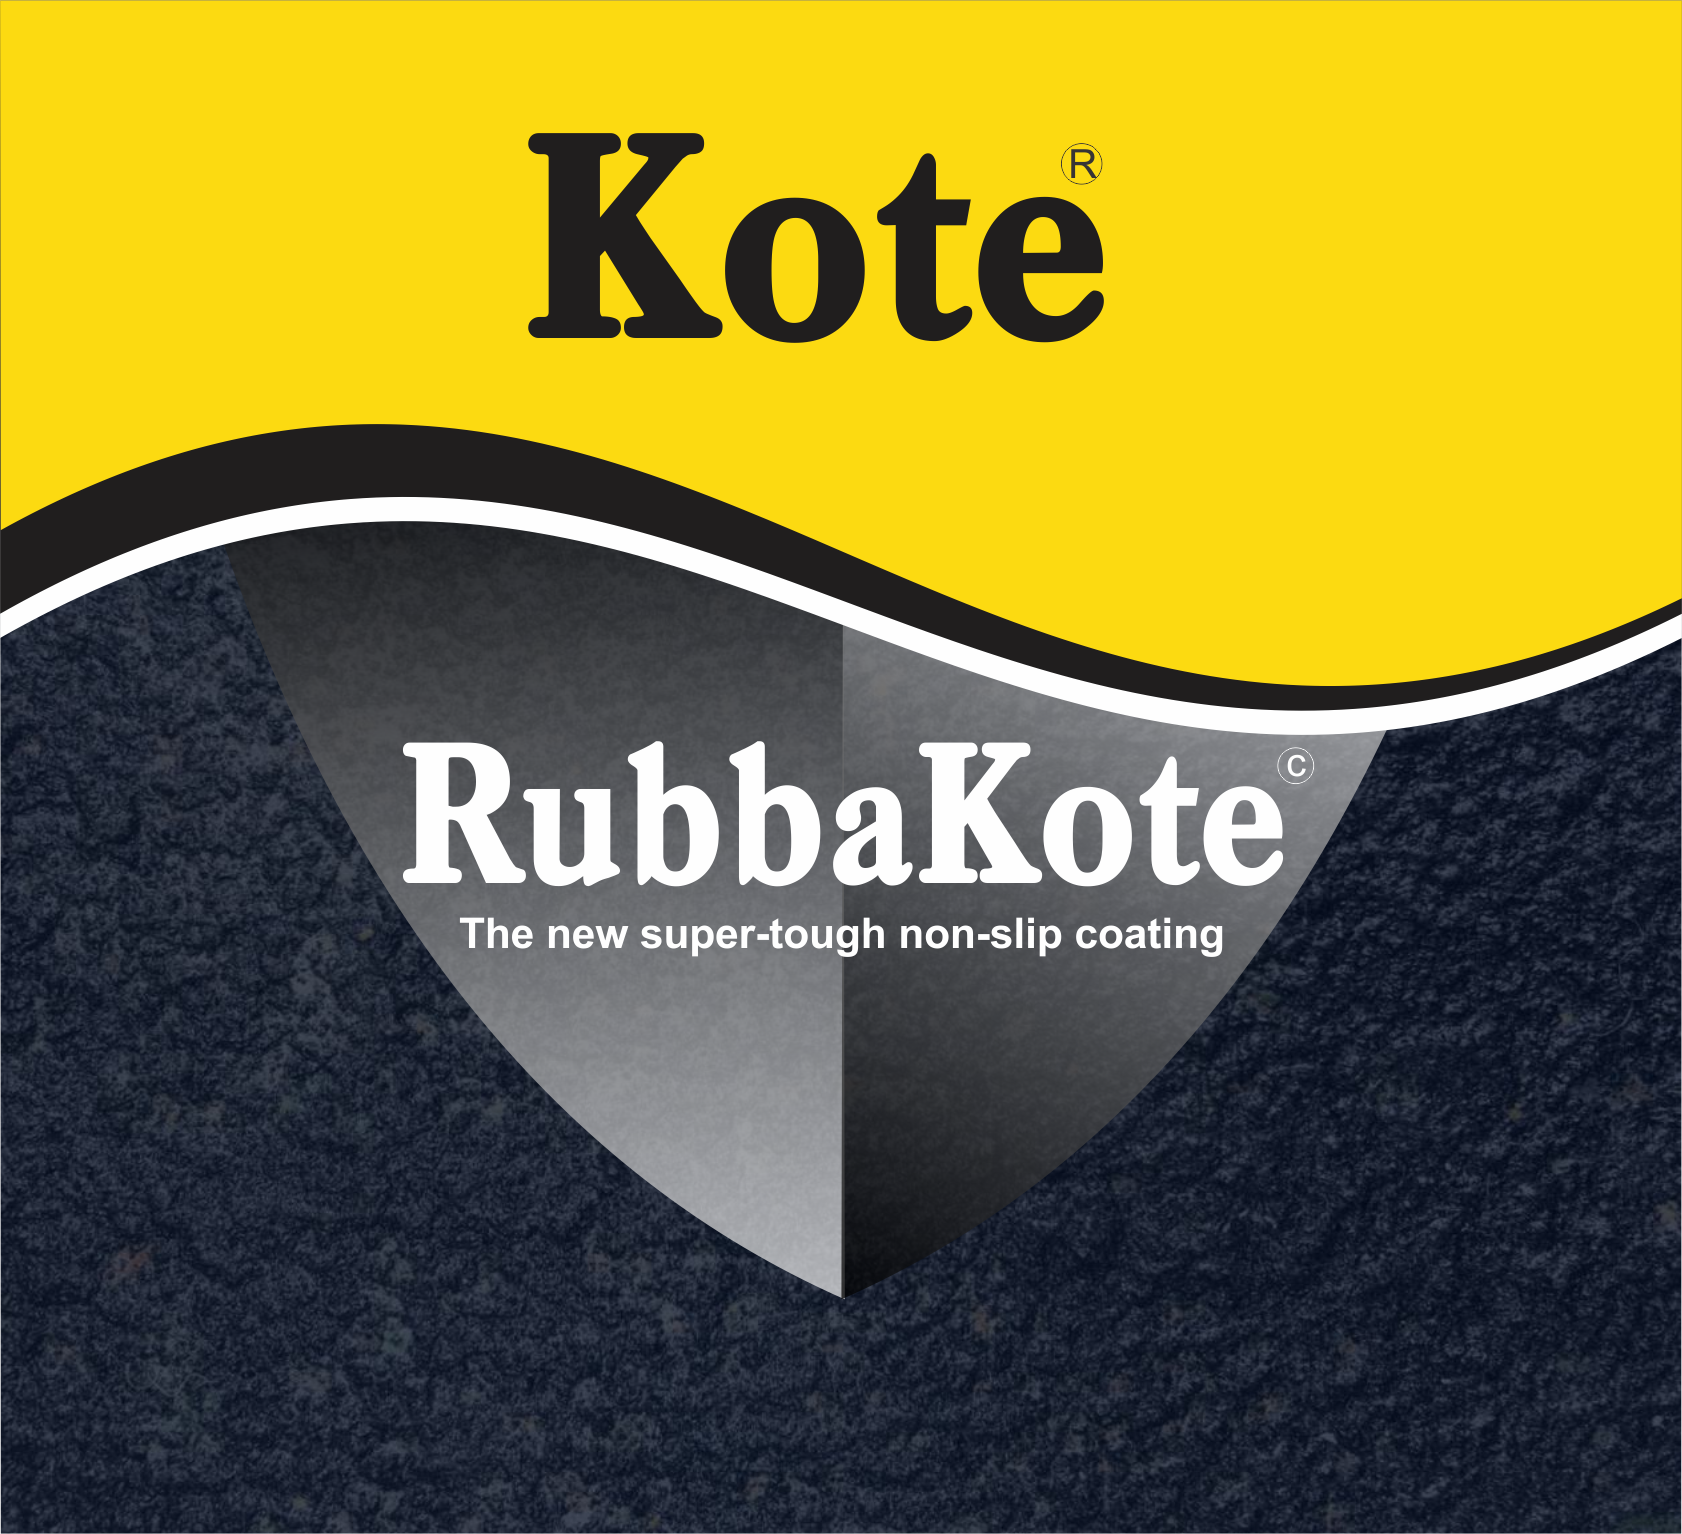 RubbaKote Label